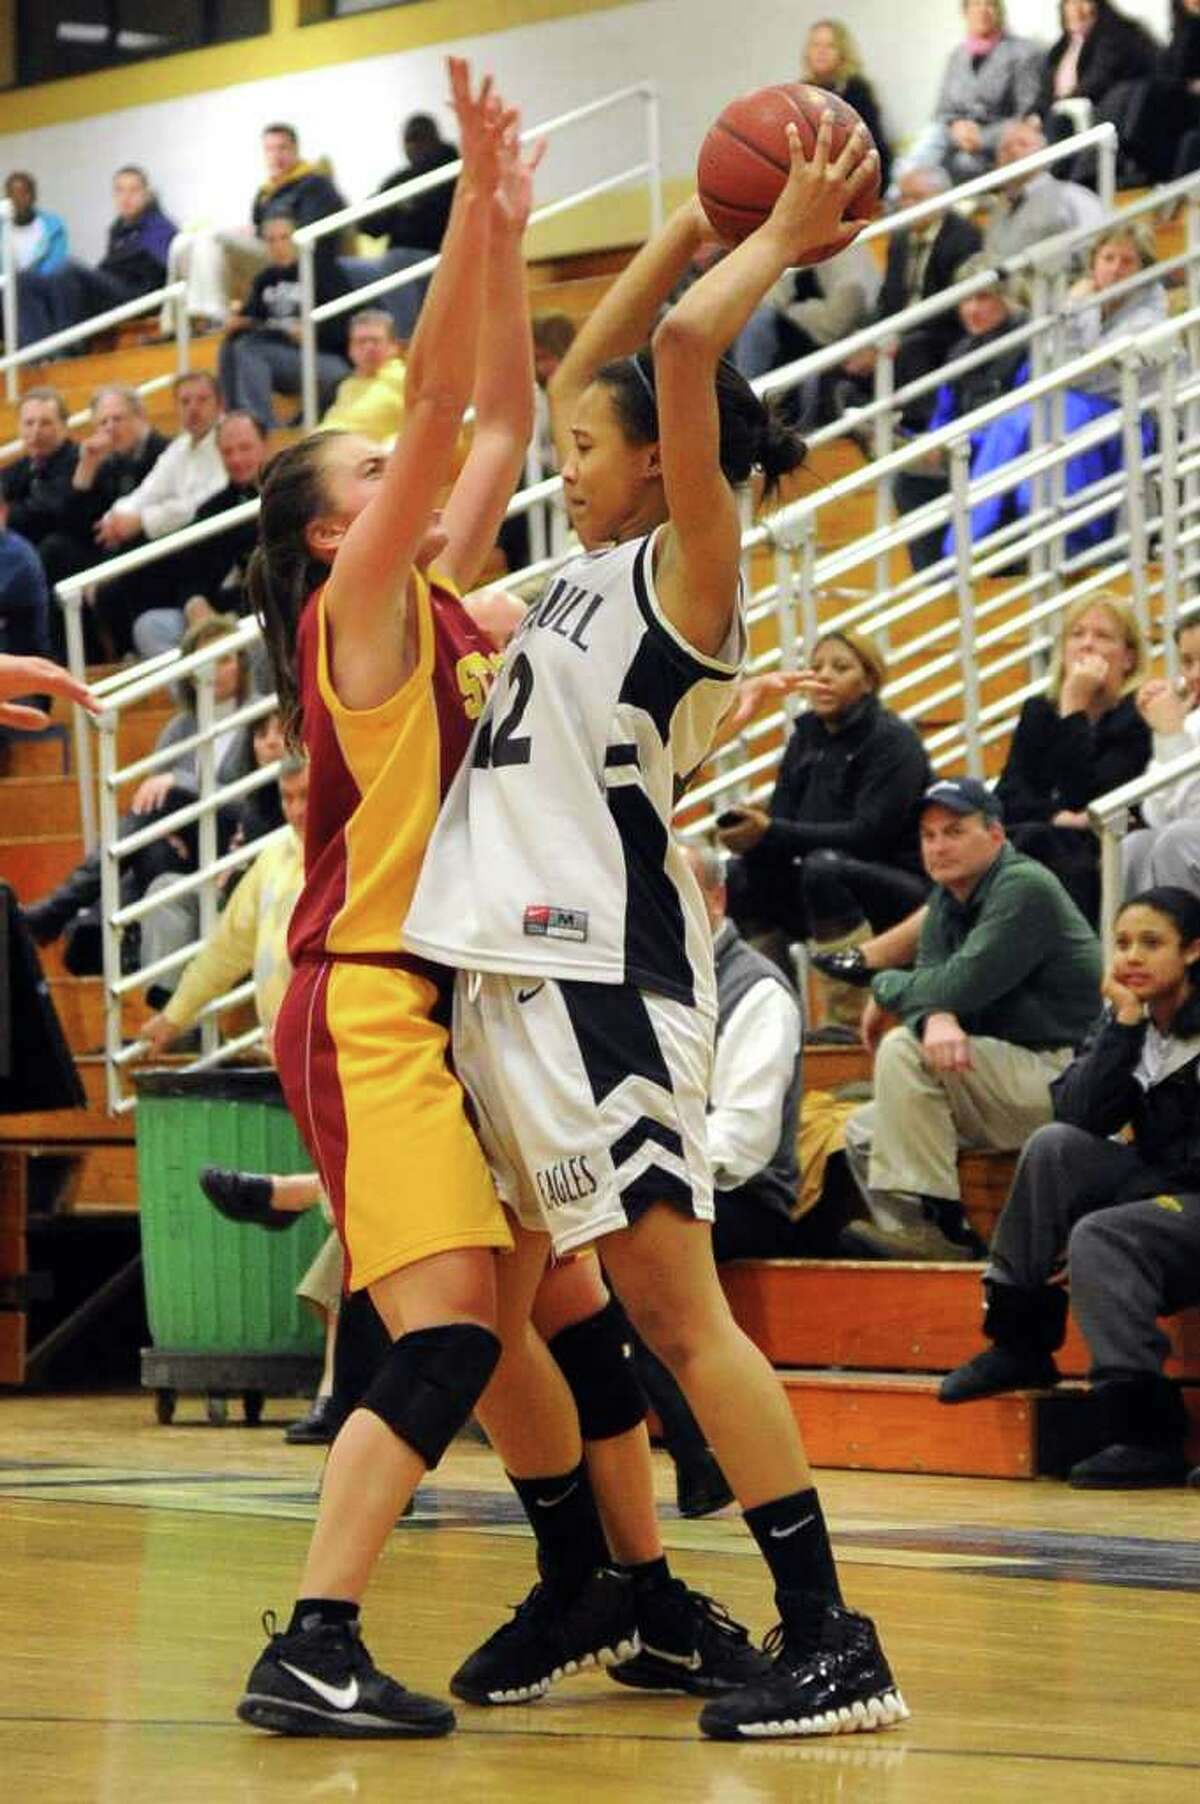 Trumbull's Taisha Lima looks to pass as St. Joseph's Jess Jowdy blocks during Tuesday's game at Trumbull High School on January 25, 2011.